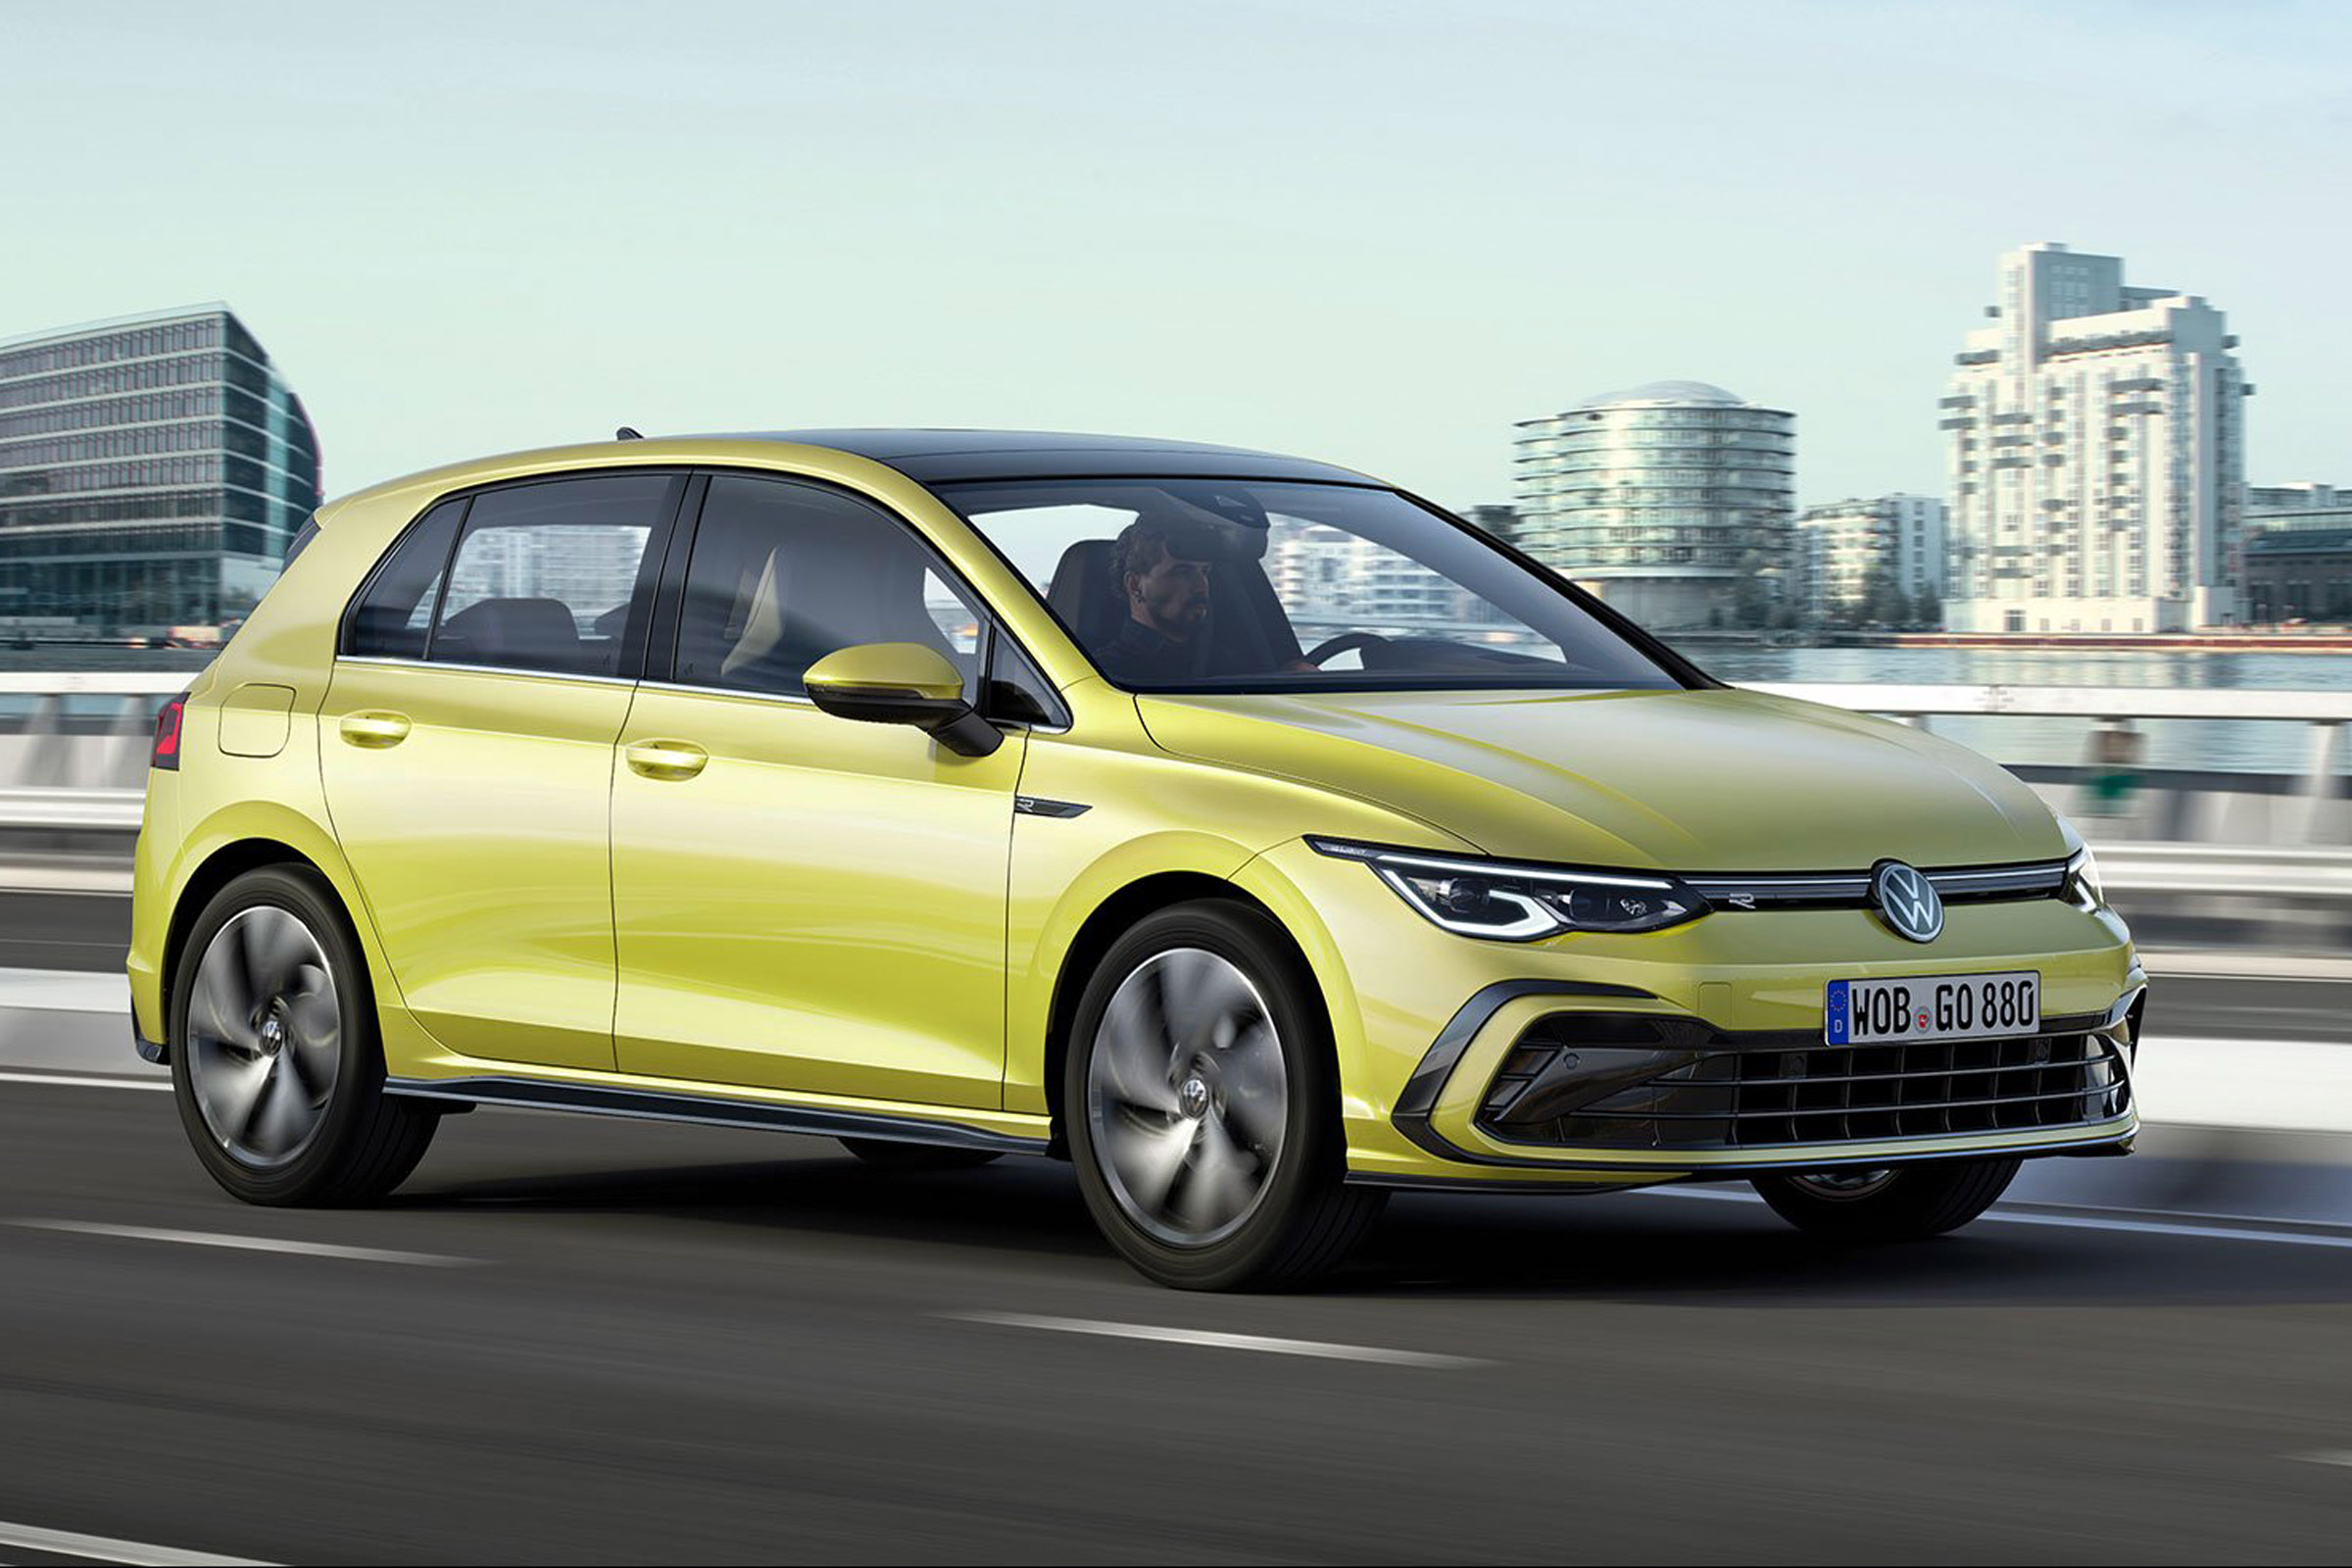 2020 Volkswagen Golf Mk8 Prices Specs And Release Date Carbuyer